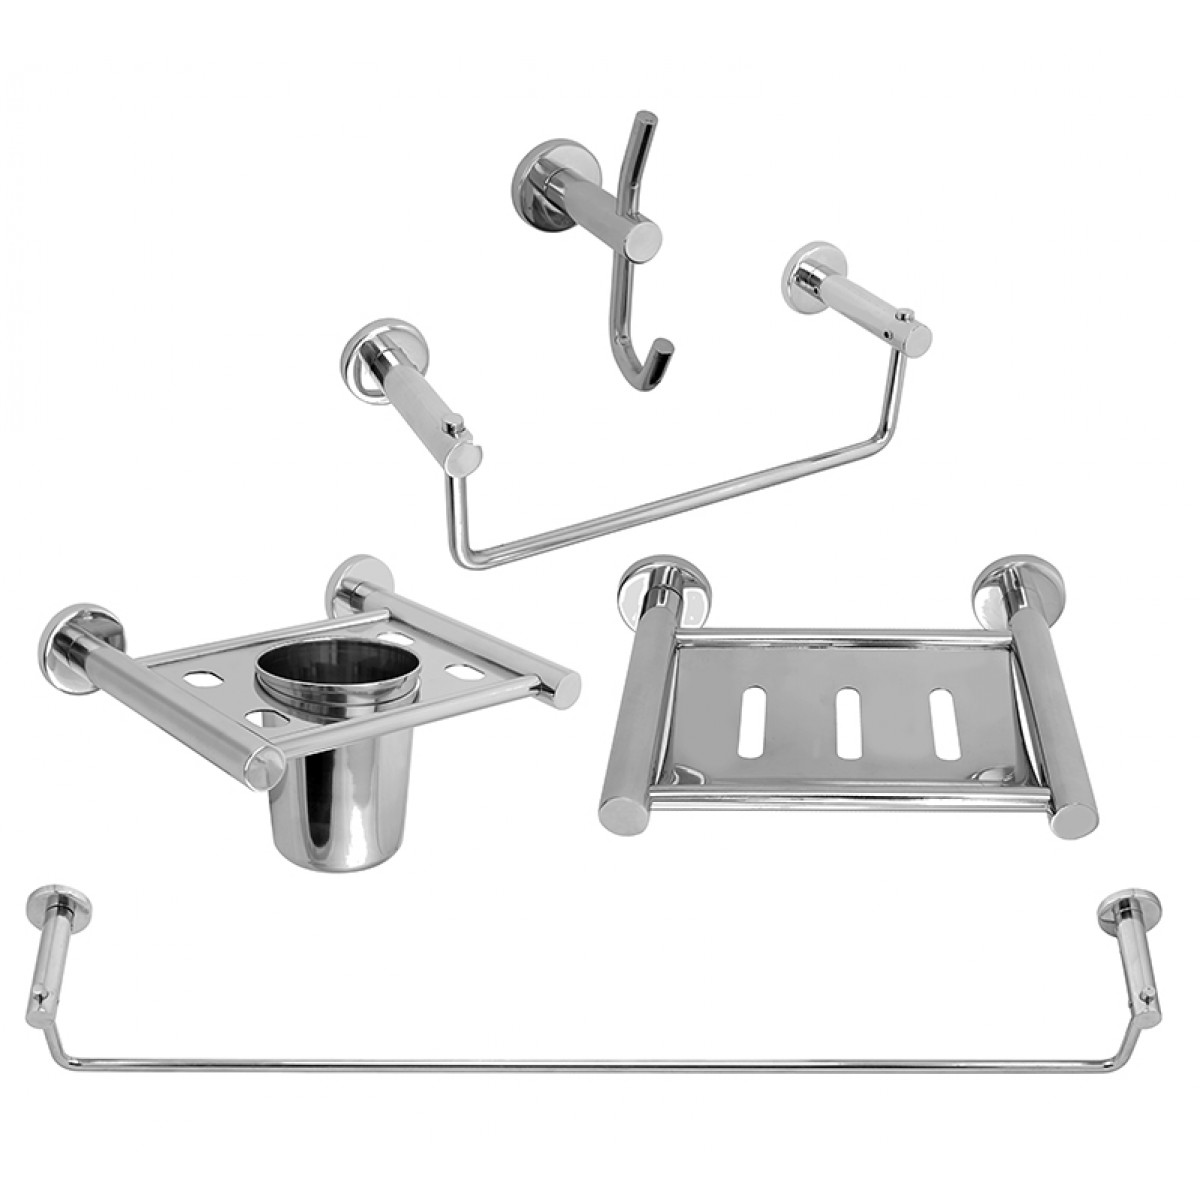 Buy Online Bath Set Bathroom Accessories Set Steel Platinum Klaxon